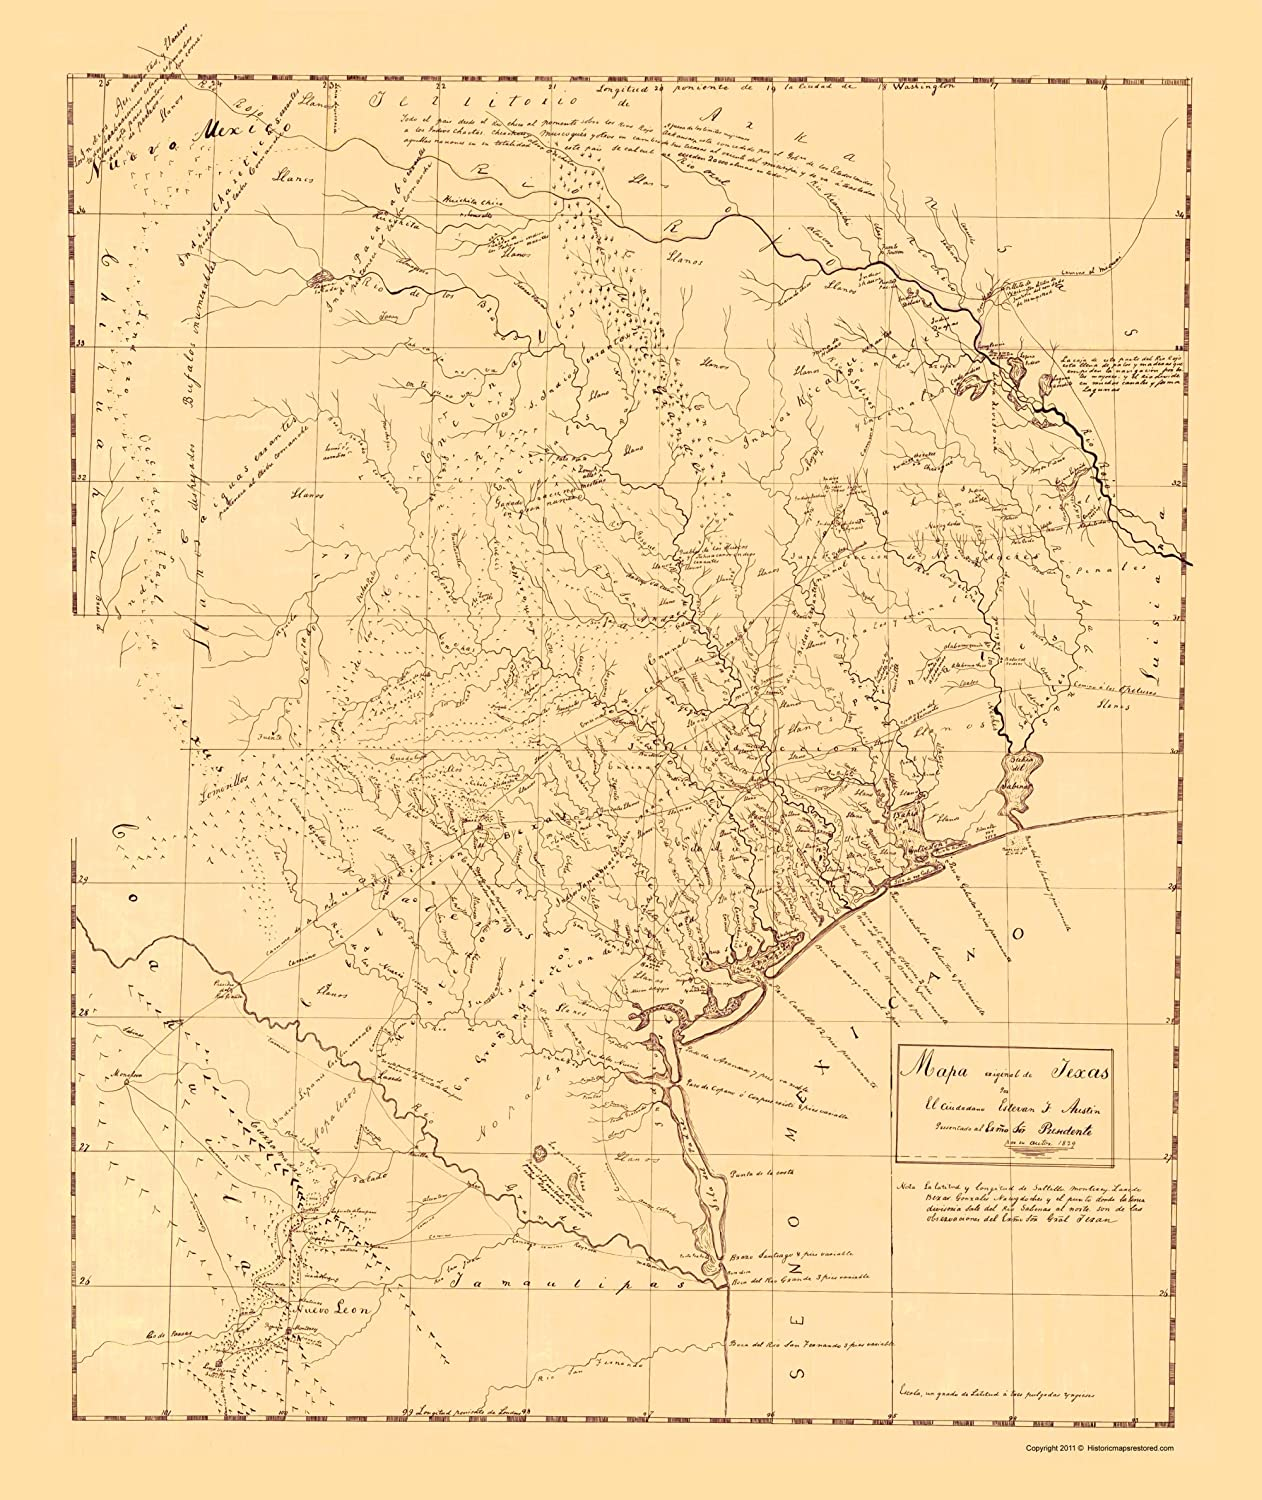 Amazon.com: Old State Map - Texas Original Map - Austin 1829 ... on old calgary maps, old orlando maps, old el paso county maps, old michigan maps, old oakland maps, old tallahassee maps, old florida maps, old minnesota maps, old bowling green maps, old tinley park maps, old pensacola maps, old green bay maps, old stockton maps, old raleigh maps, old tobin maps, old ohio maps, old texas maps, old honolulu maps, old annapolis maps, old chico maps,